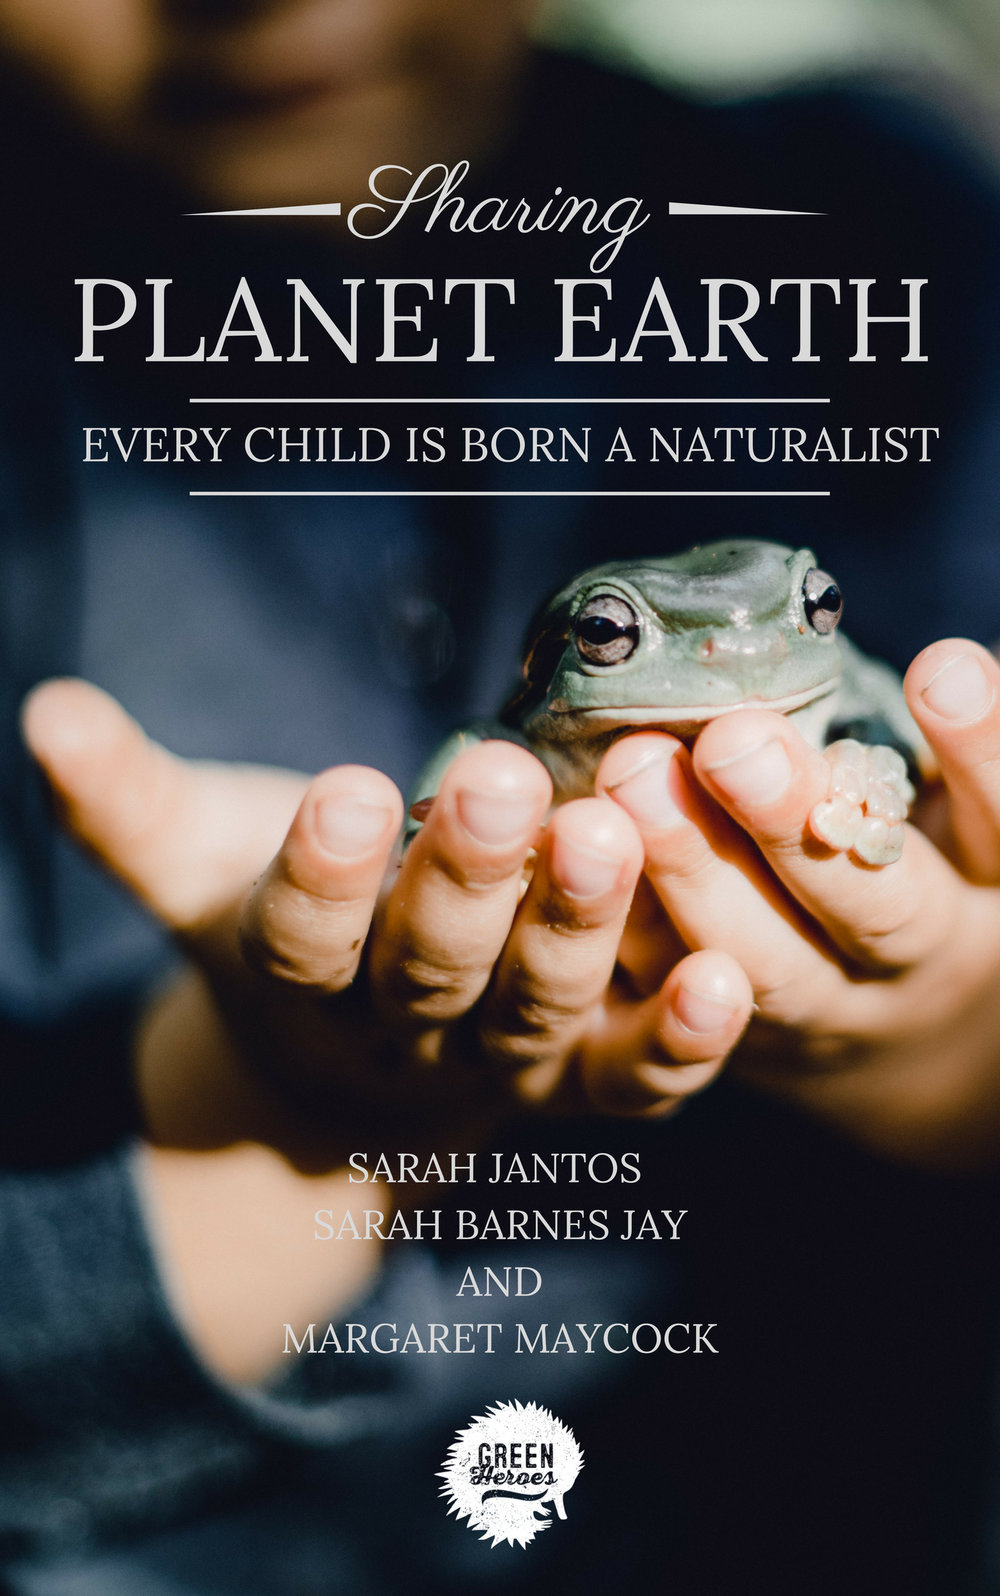 Planet Earth part 1.jpg